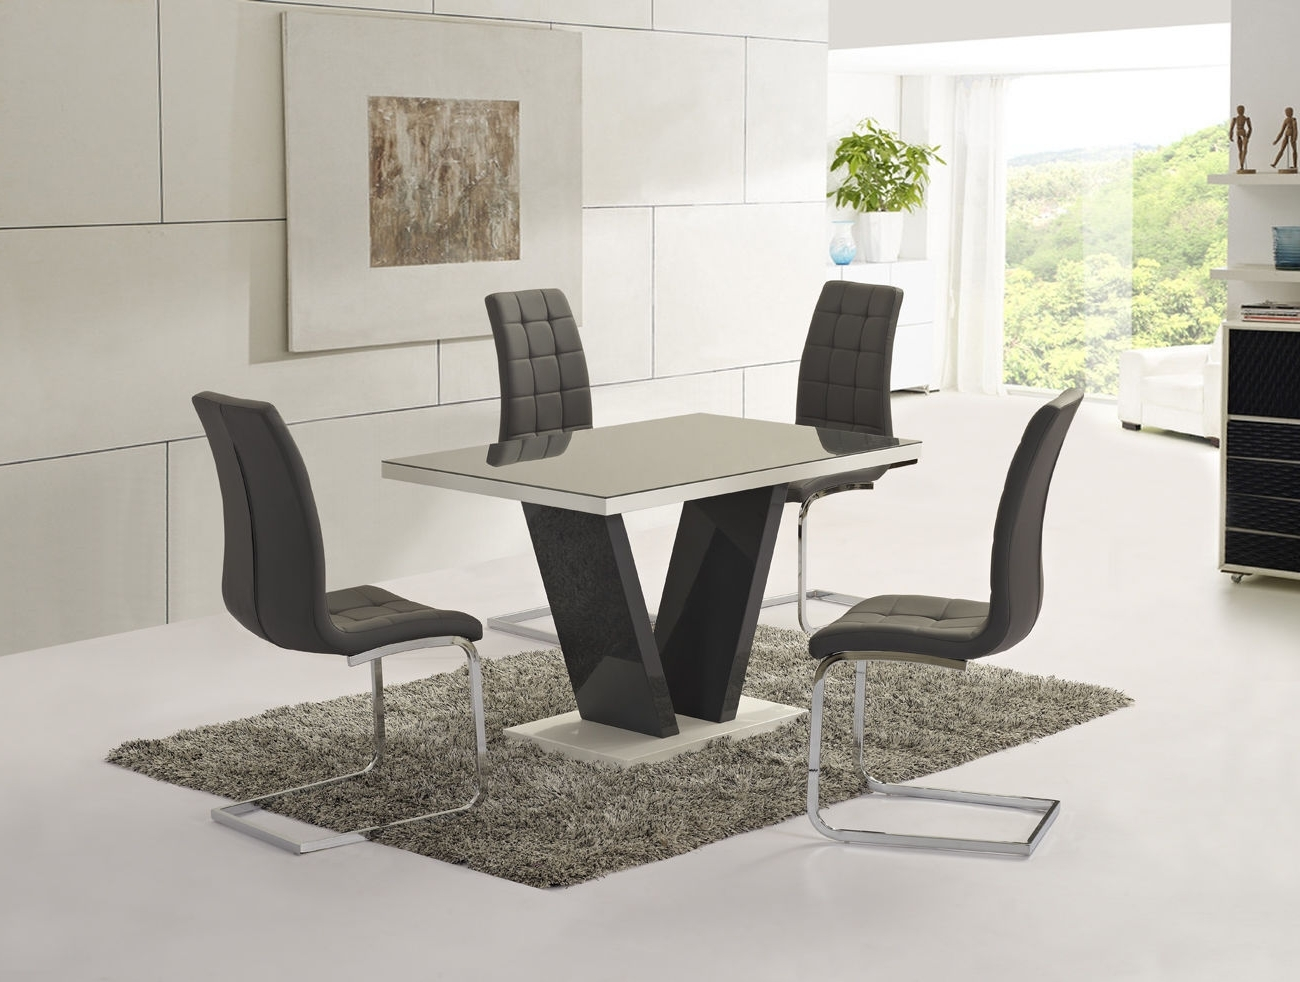 2018 Ga Vico Gloss Grey Glass Top Designer 160Cm Dining Set – 4 6 Grey Intended For Cheap Glass Dining Tables And 6 Chairs (Gallery 6 of 25)